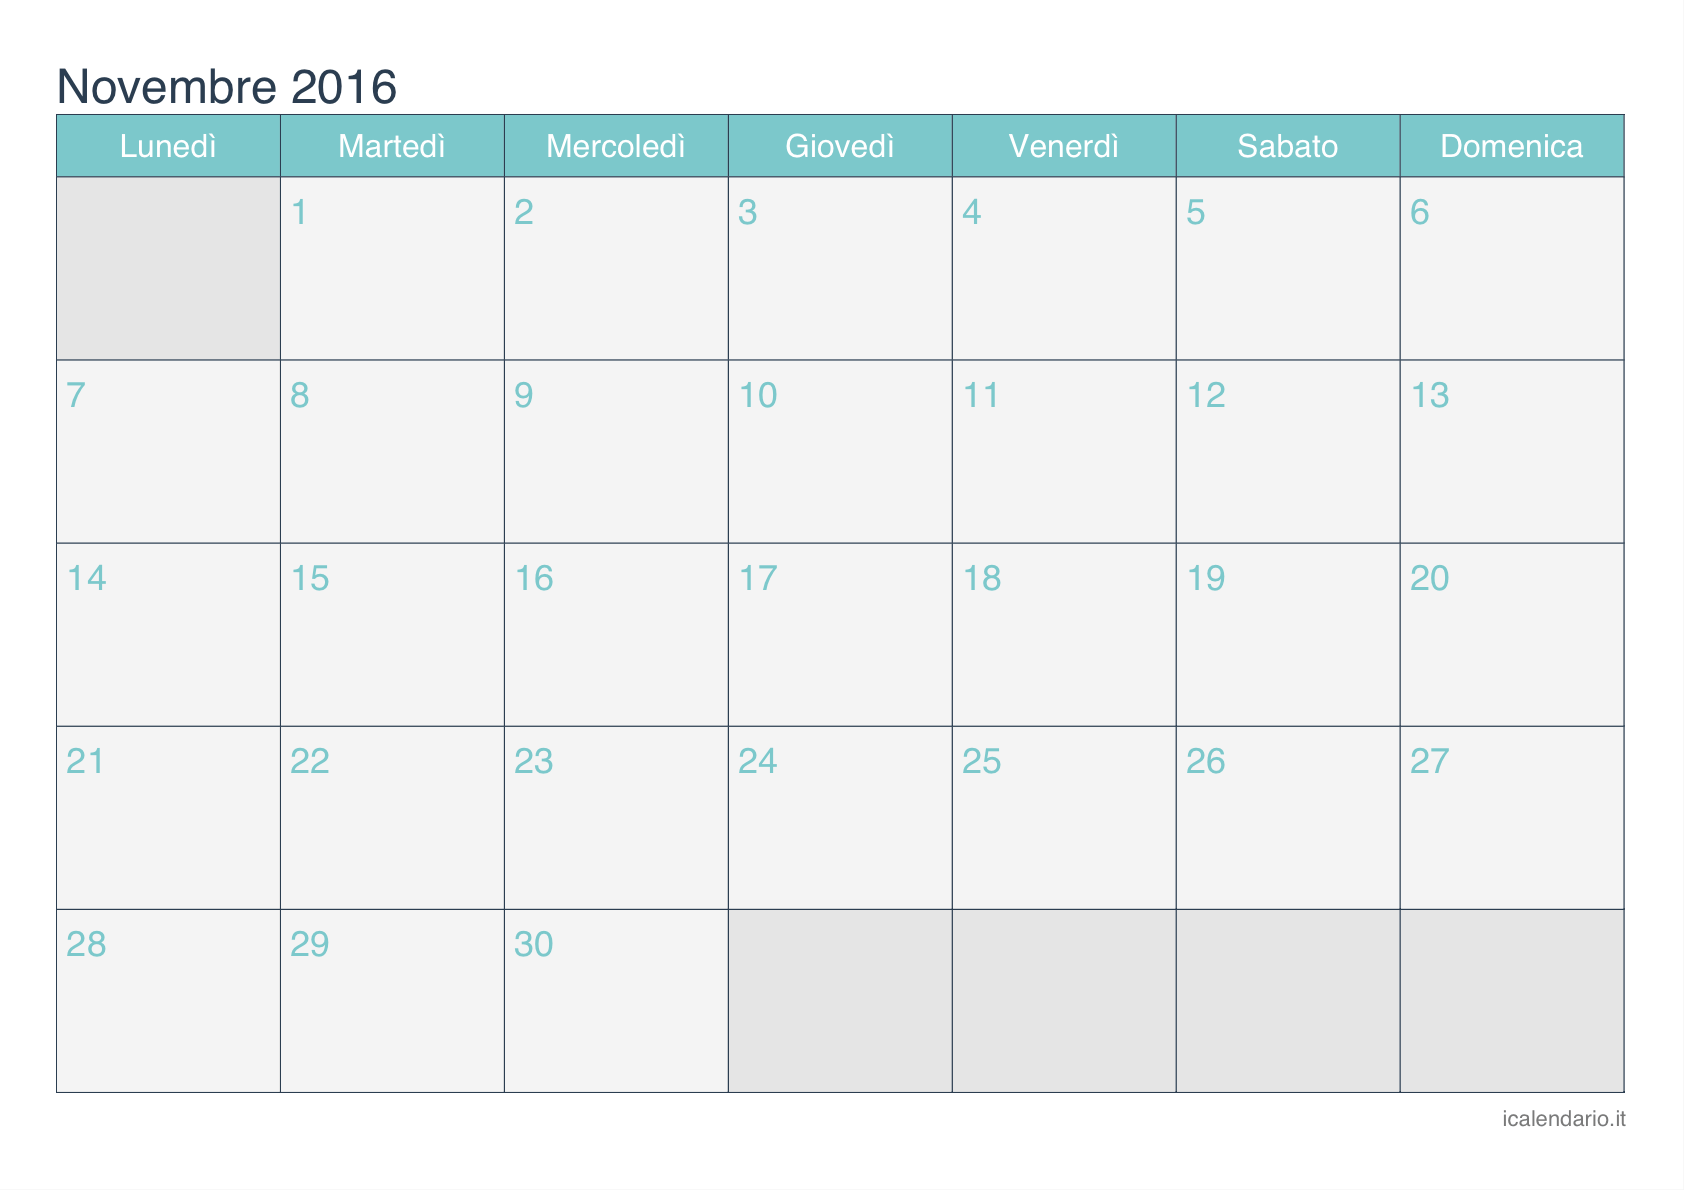 calendario novembre 2016 da stampare - icalendario.it